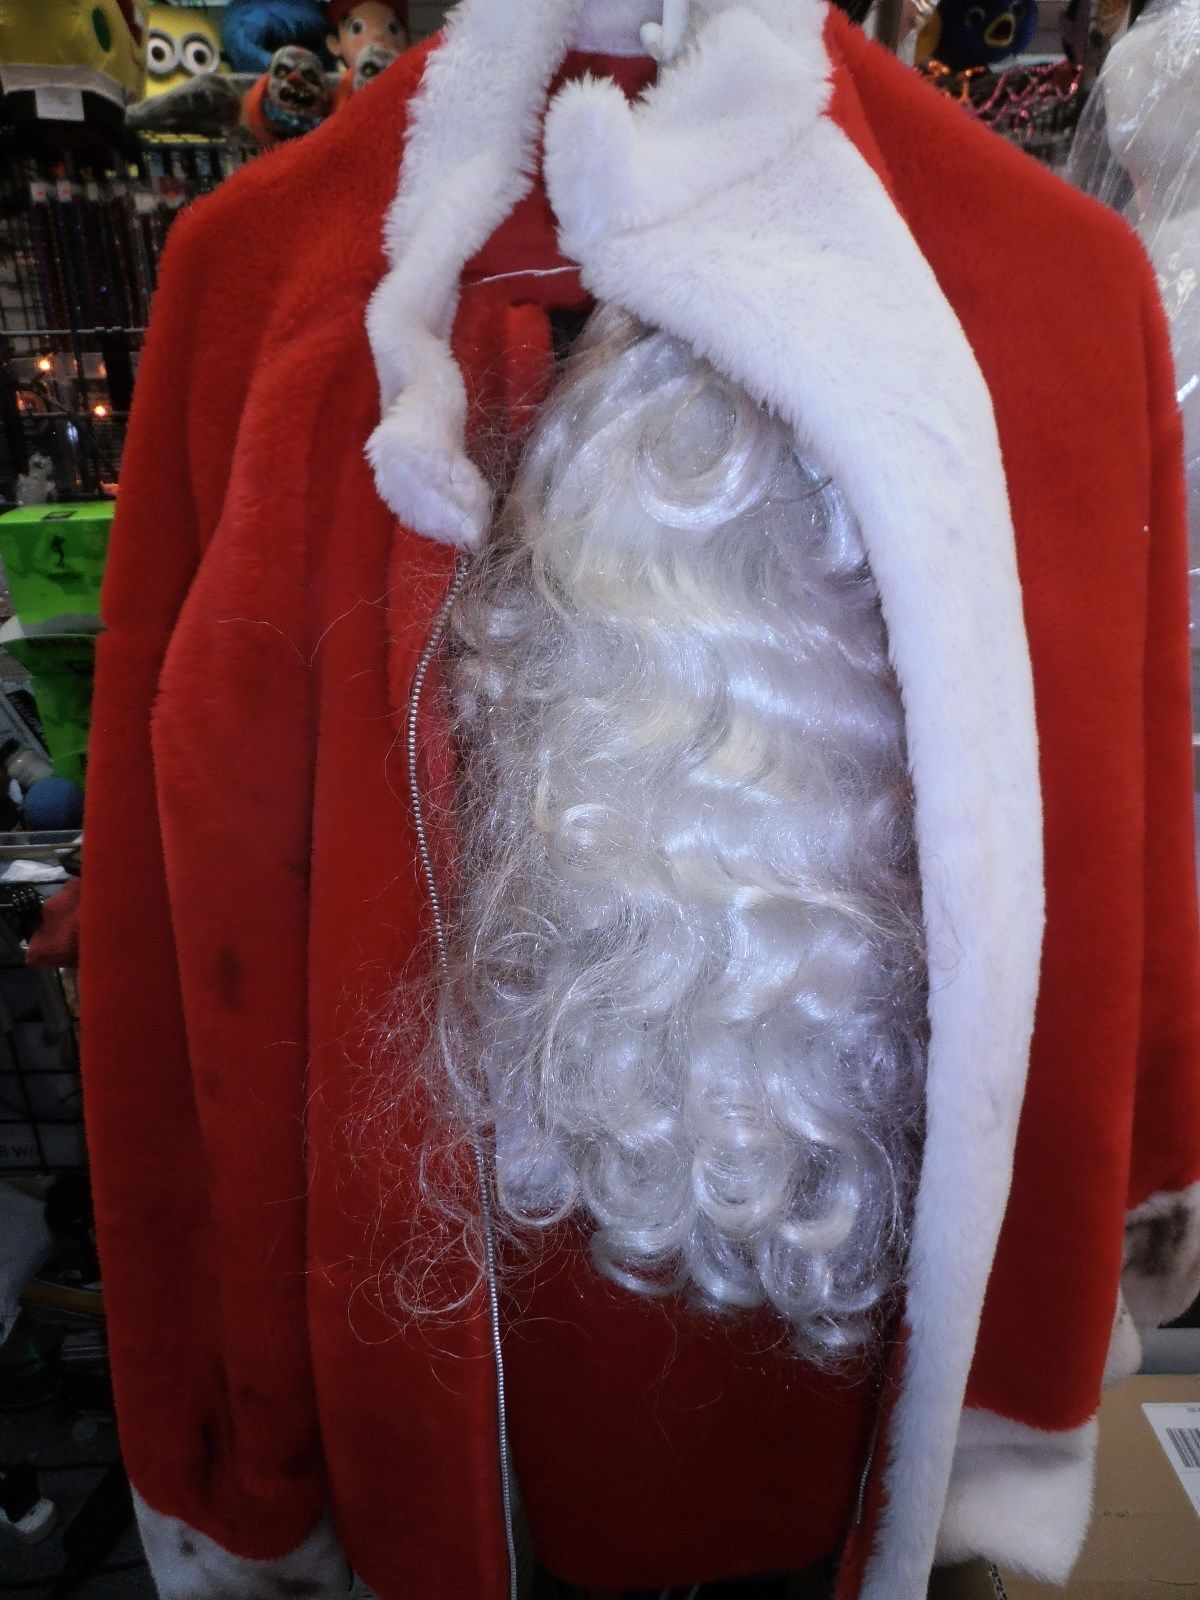 BAD SANTA SUIT COSTUME OUTFIT Santa Claus Halloween FIRST PLACE WINNER LARGE